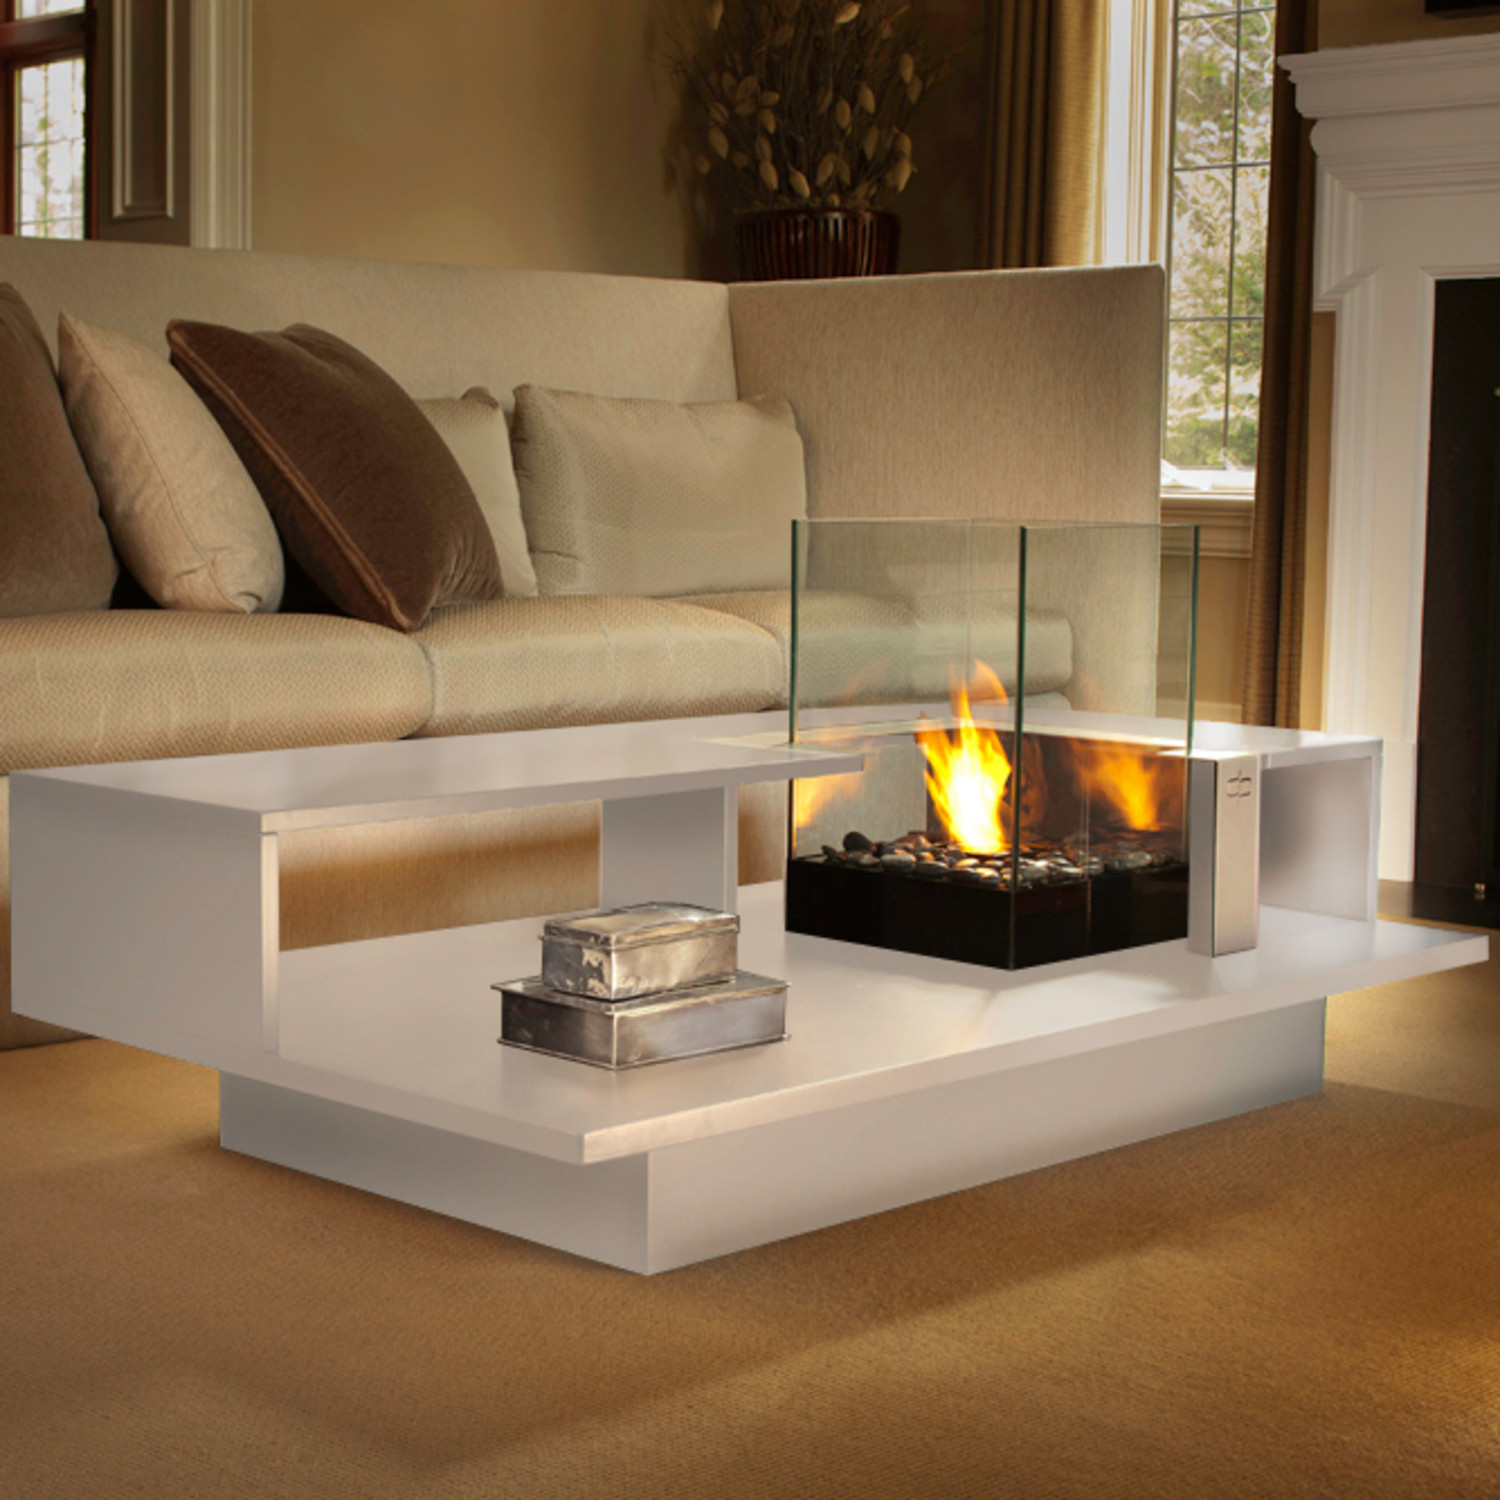 Level Fire Coffee Table Black Textured Decorpro Touch Of Modern